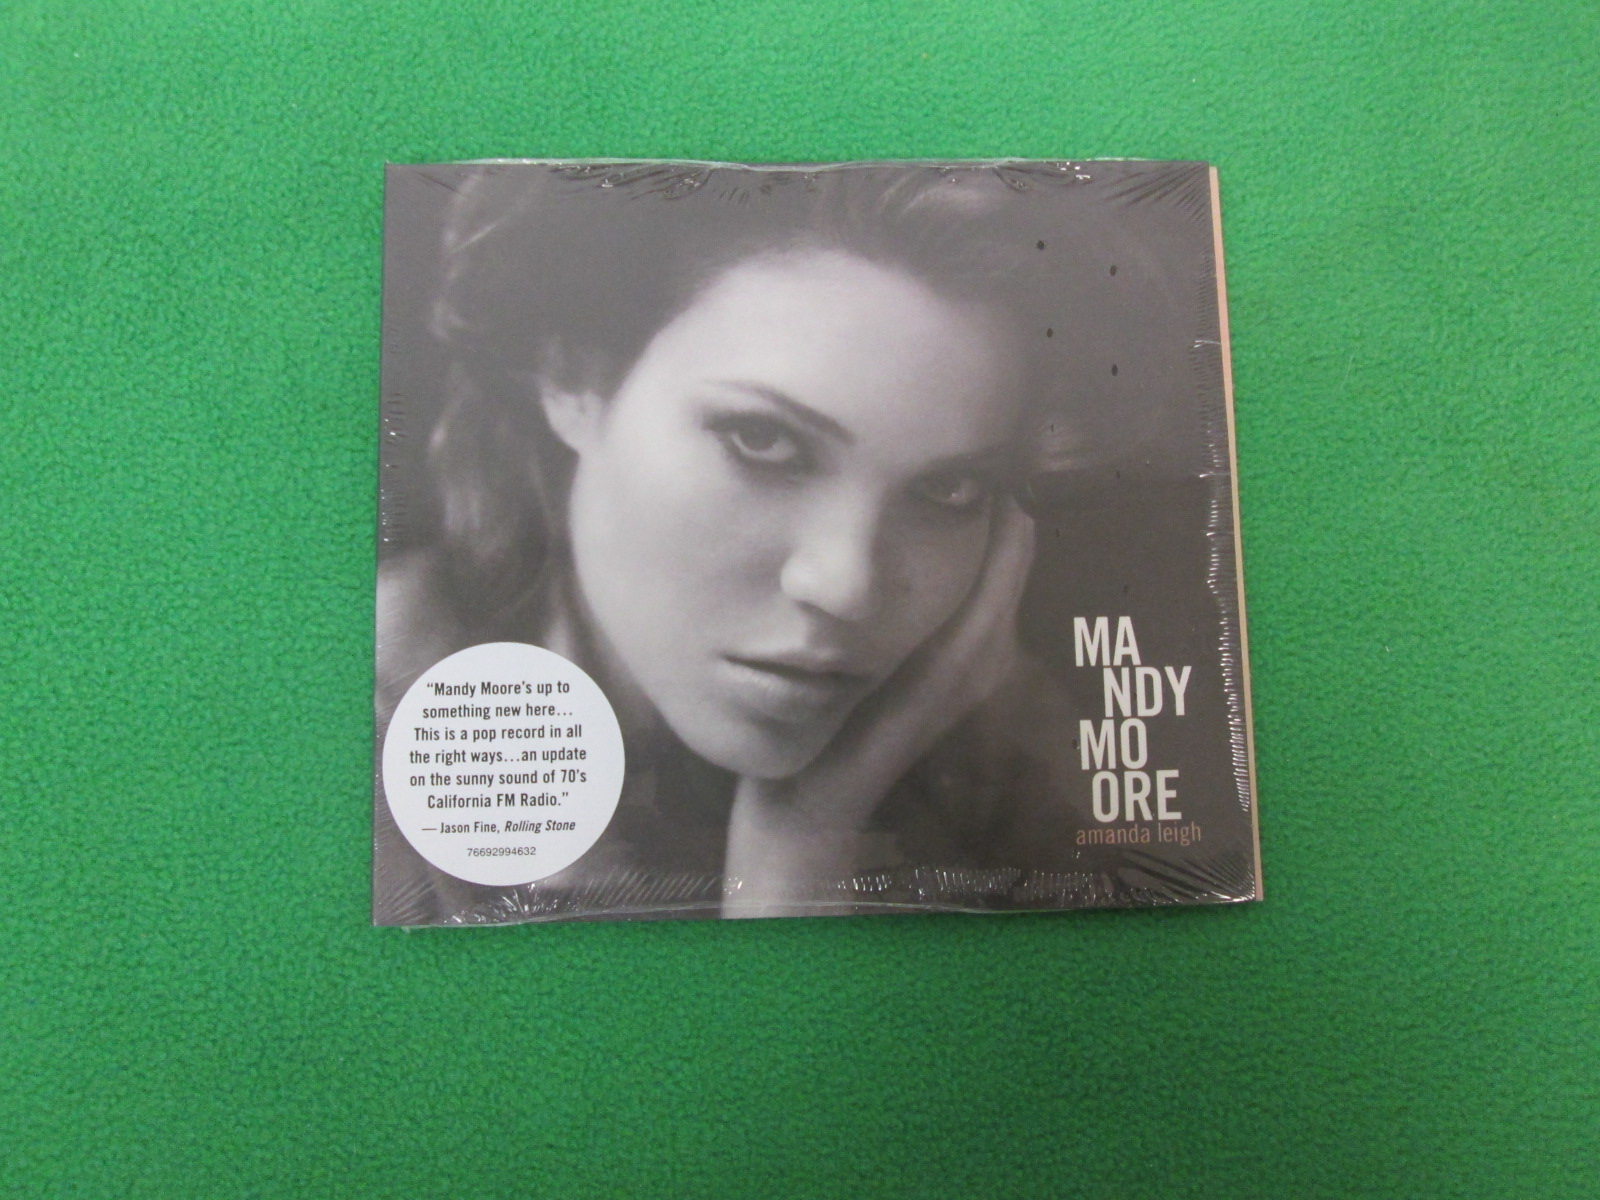 Amanda Leigh Dig By Mandy Moore On Audio CD